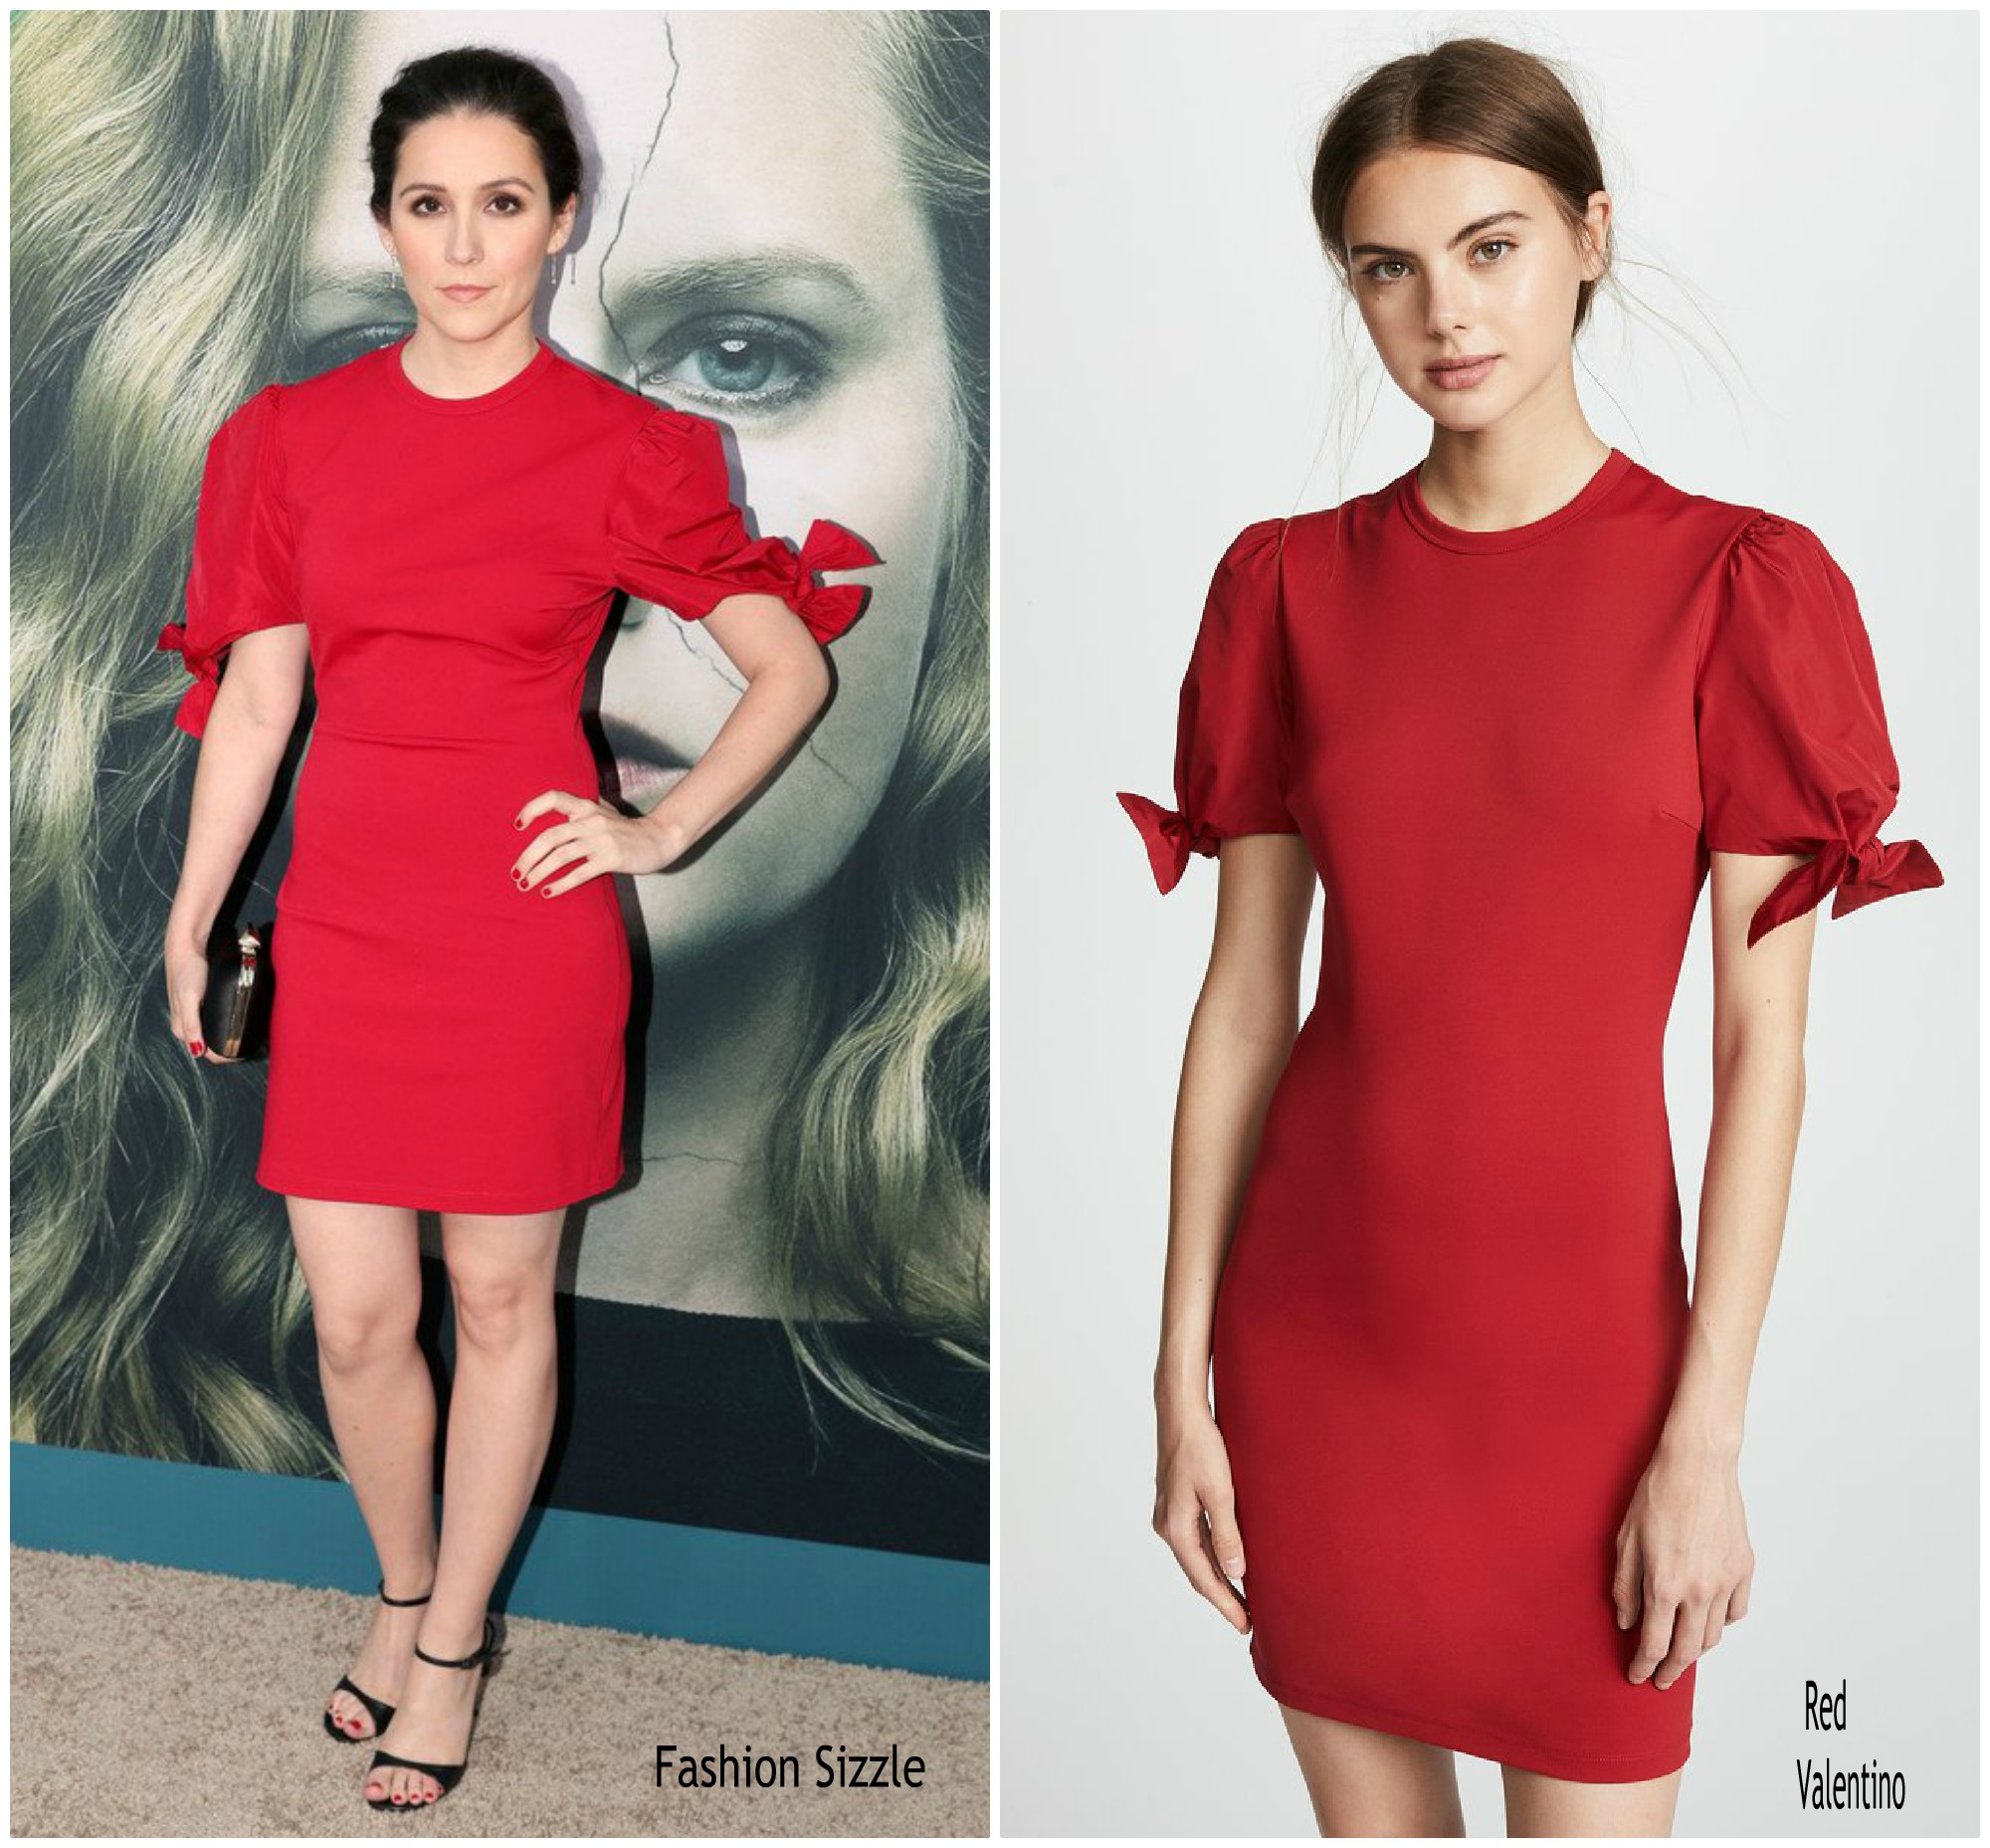 shannon-woodward-in-red-valentino-hbos-sharp-objects-la-premiere